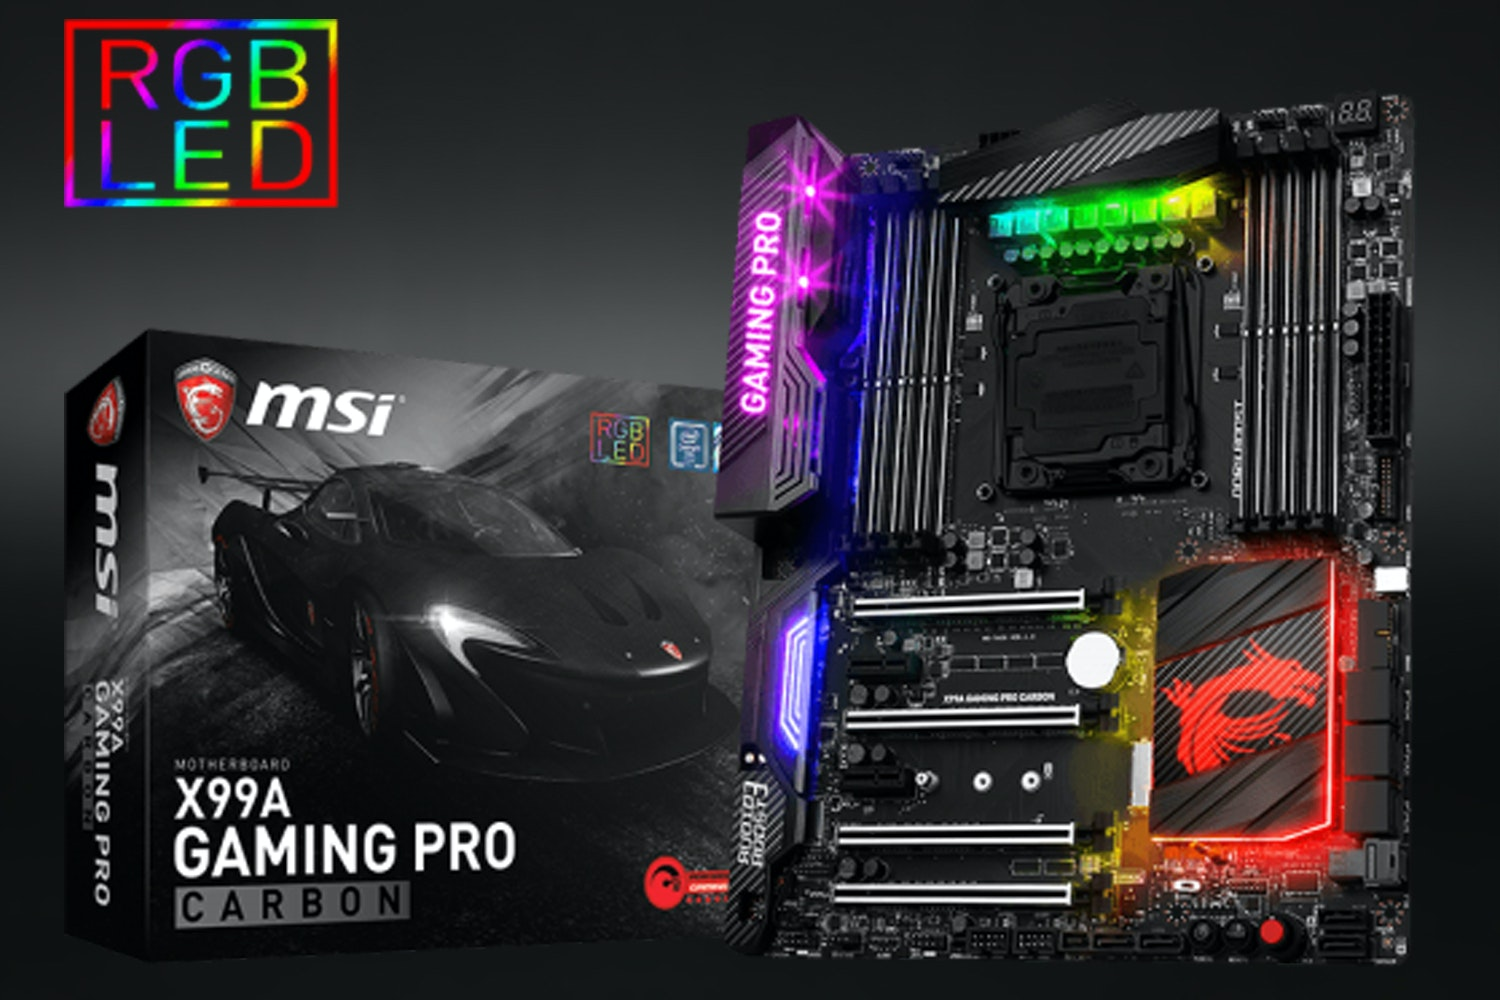 X99A Gaming Pro Carbon Motherboard